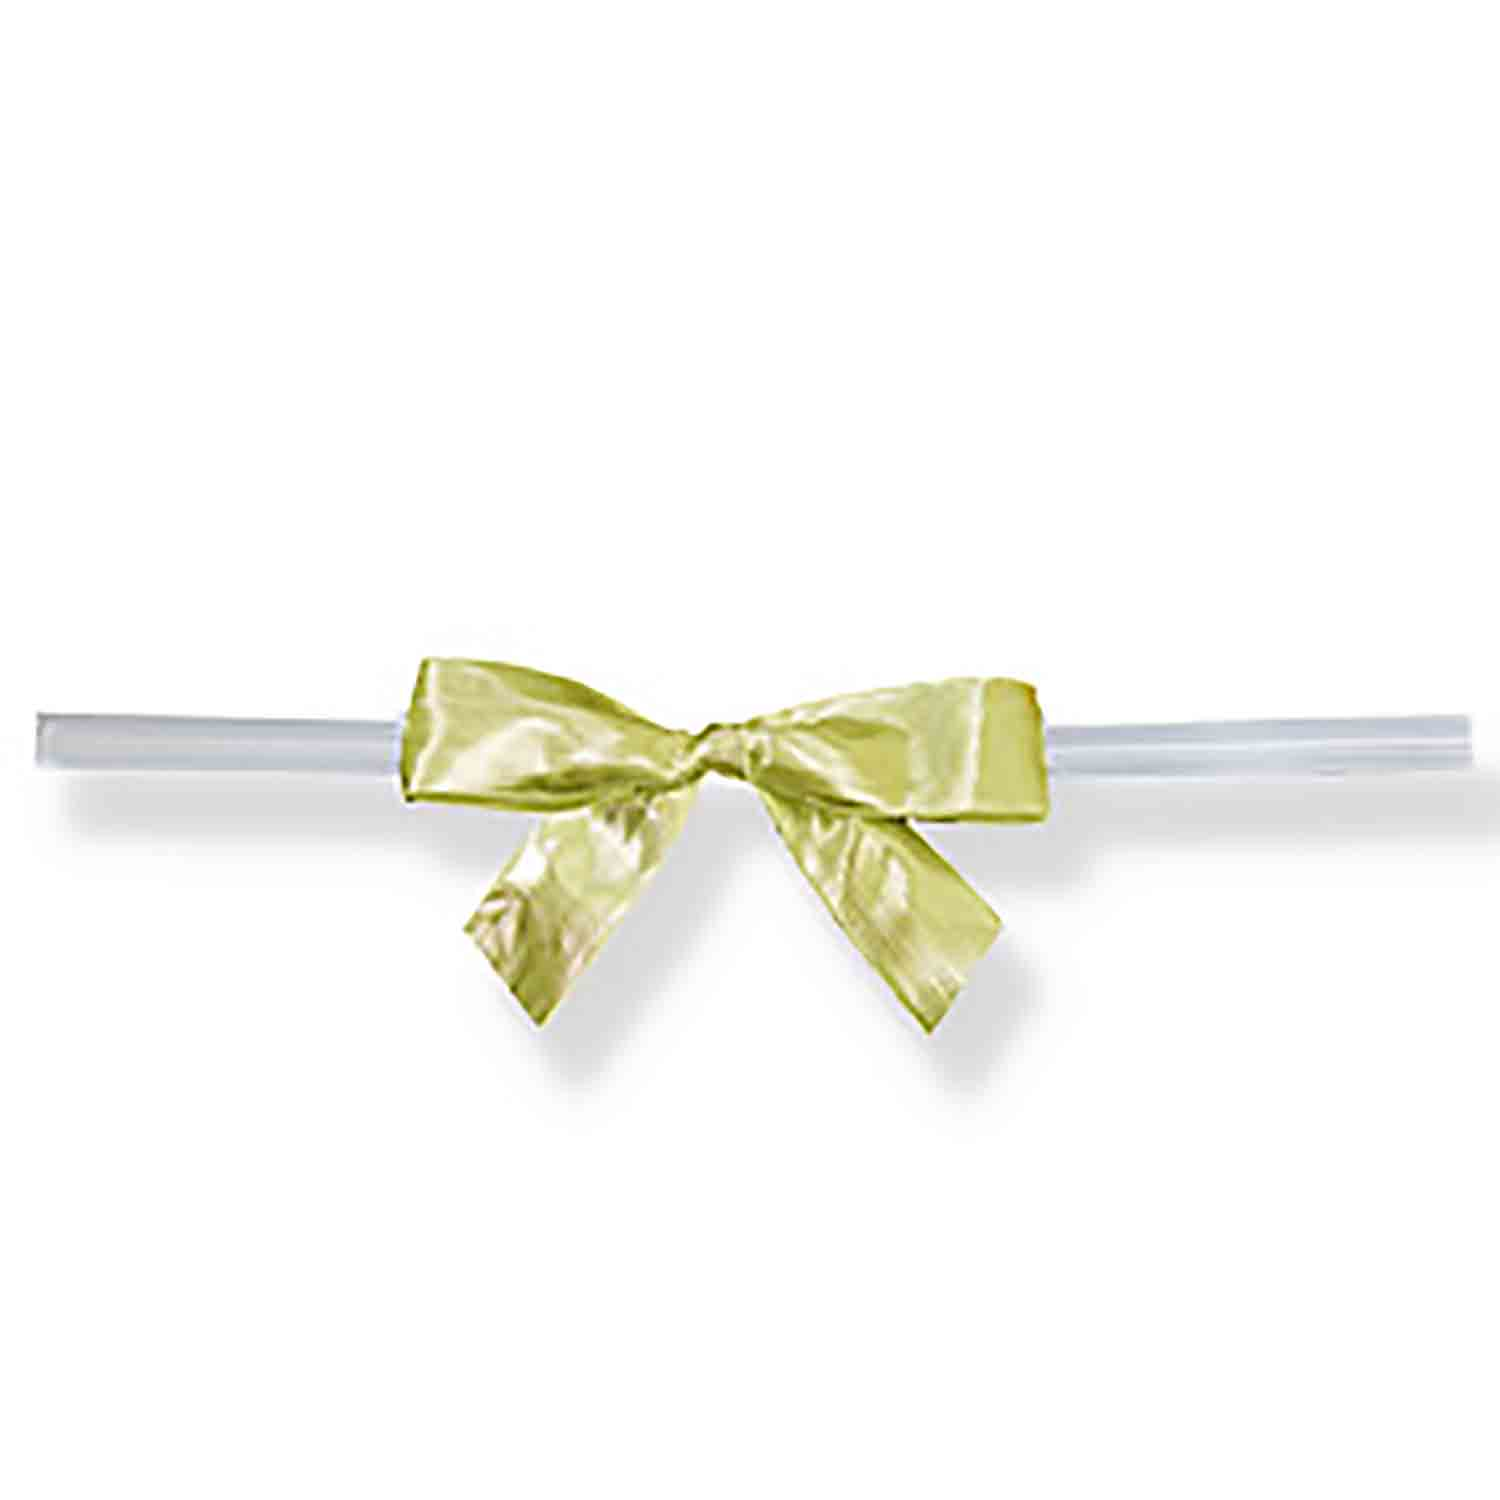 Gold Twist Tie Bows